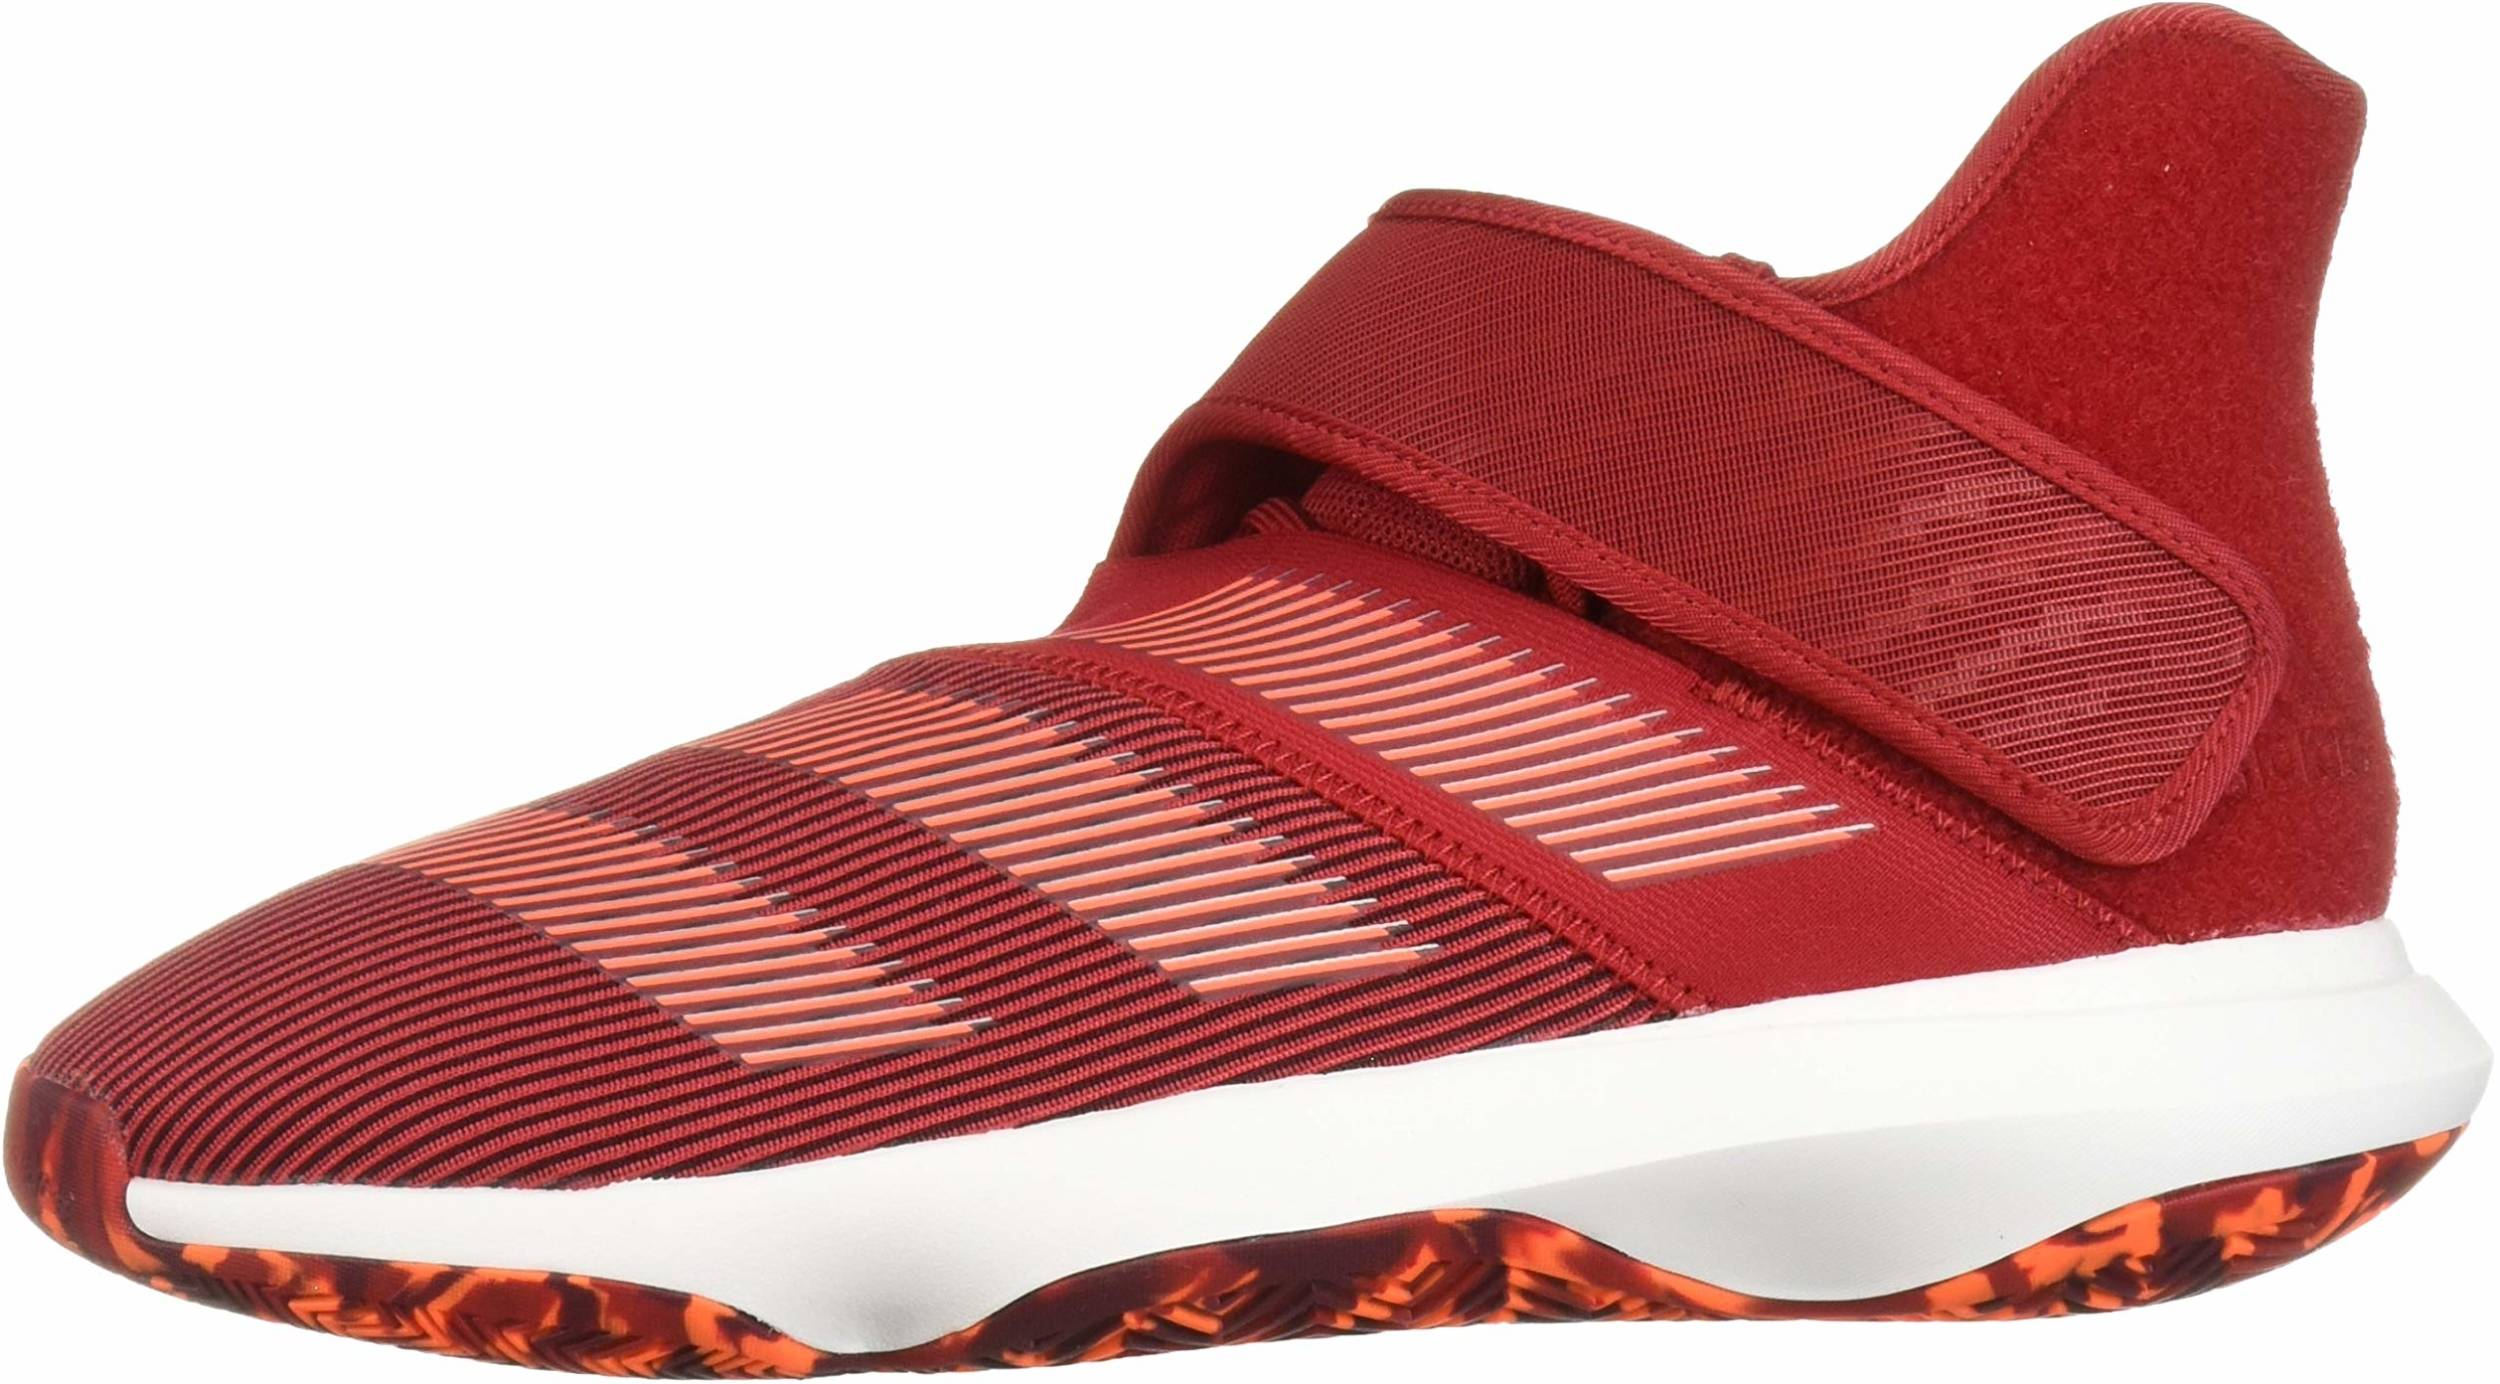 Save 30% on Red Basketball Shoes (107